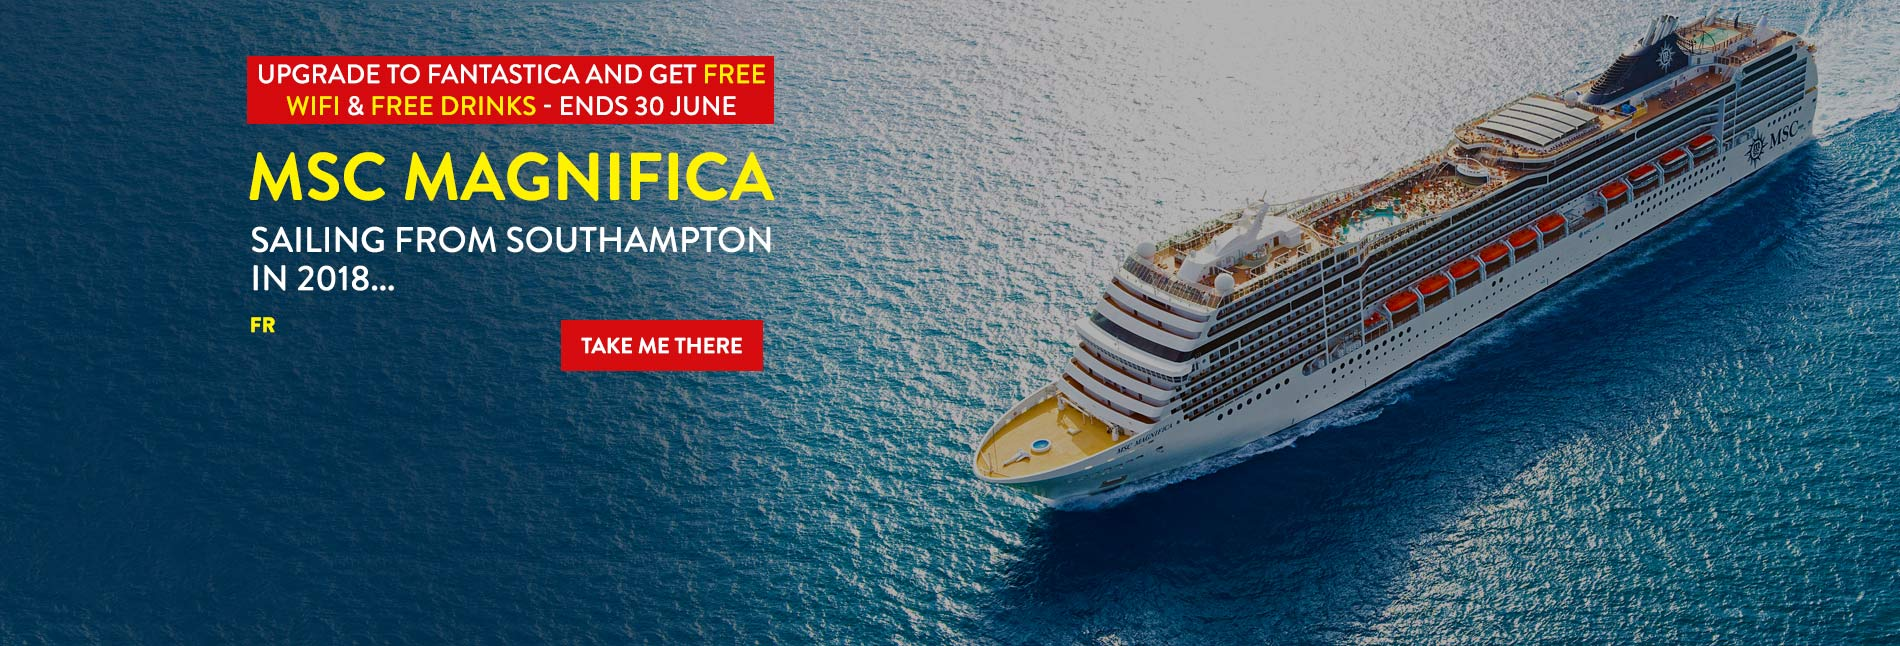 Cruise Deals 2017 2018 Cheap Cruises Holiday Deals Cruise Nation